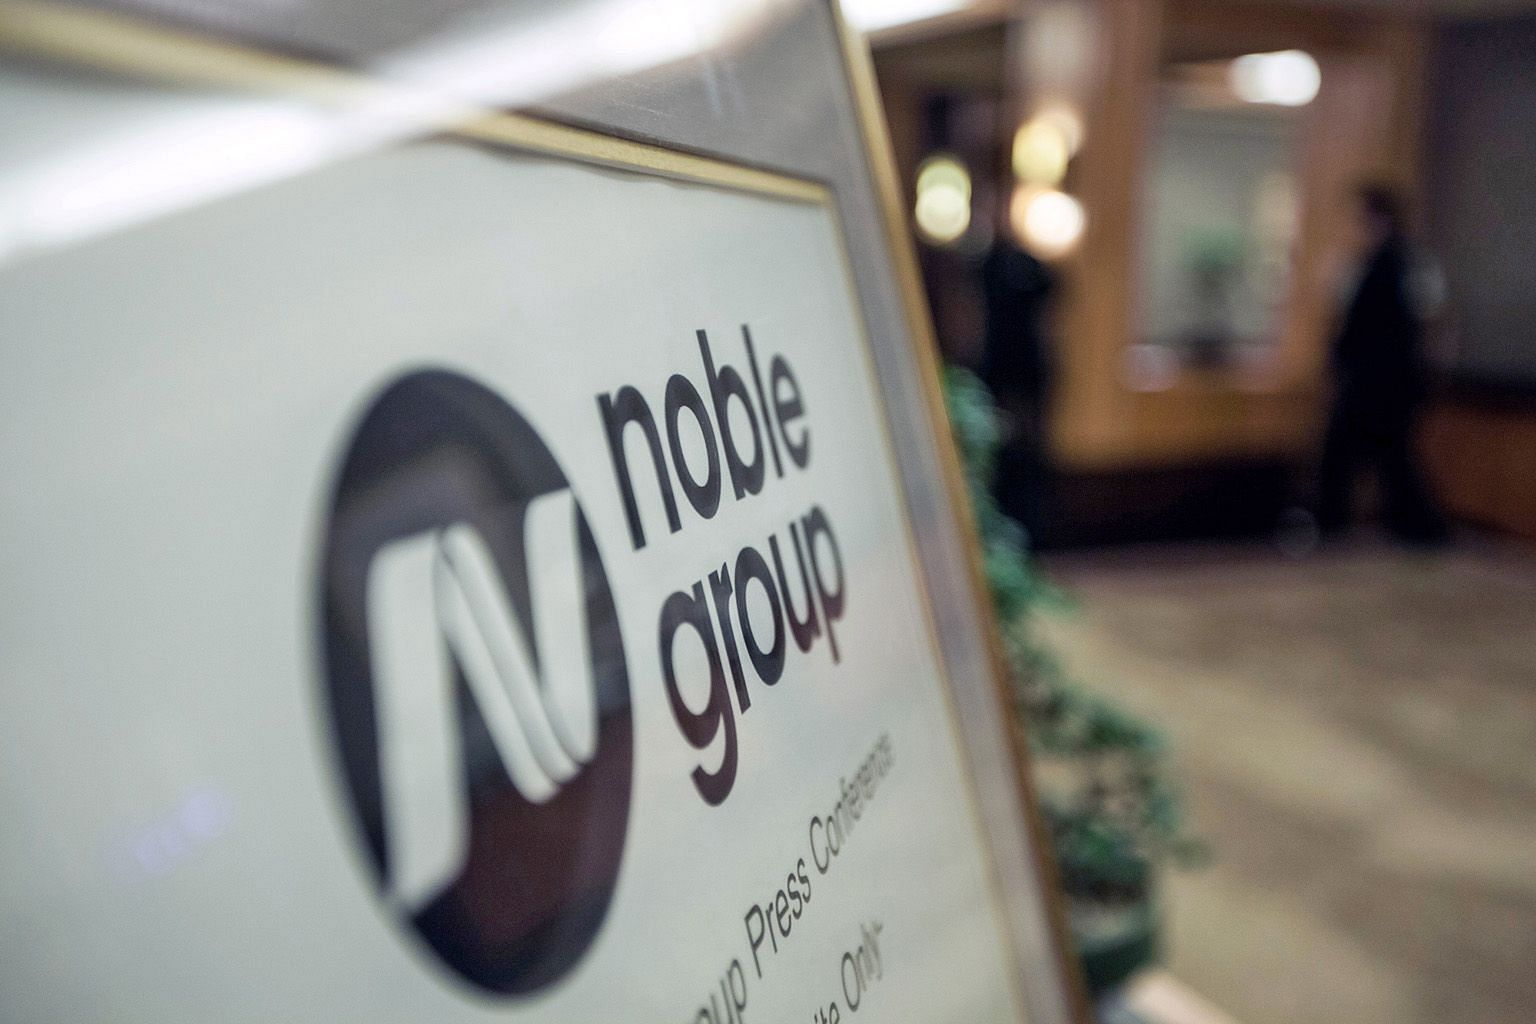 On Sunday, Noble moved the deadline for its US$3.5 billion (S$4.8 billion) debt restructuring back by two weeks to address regulators' concerns.